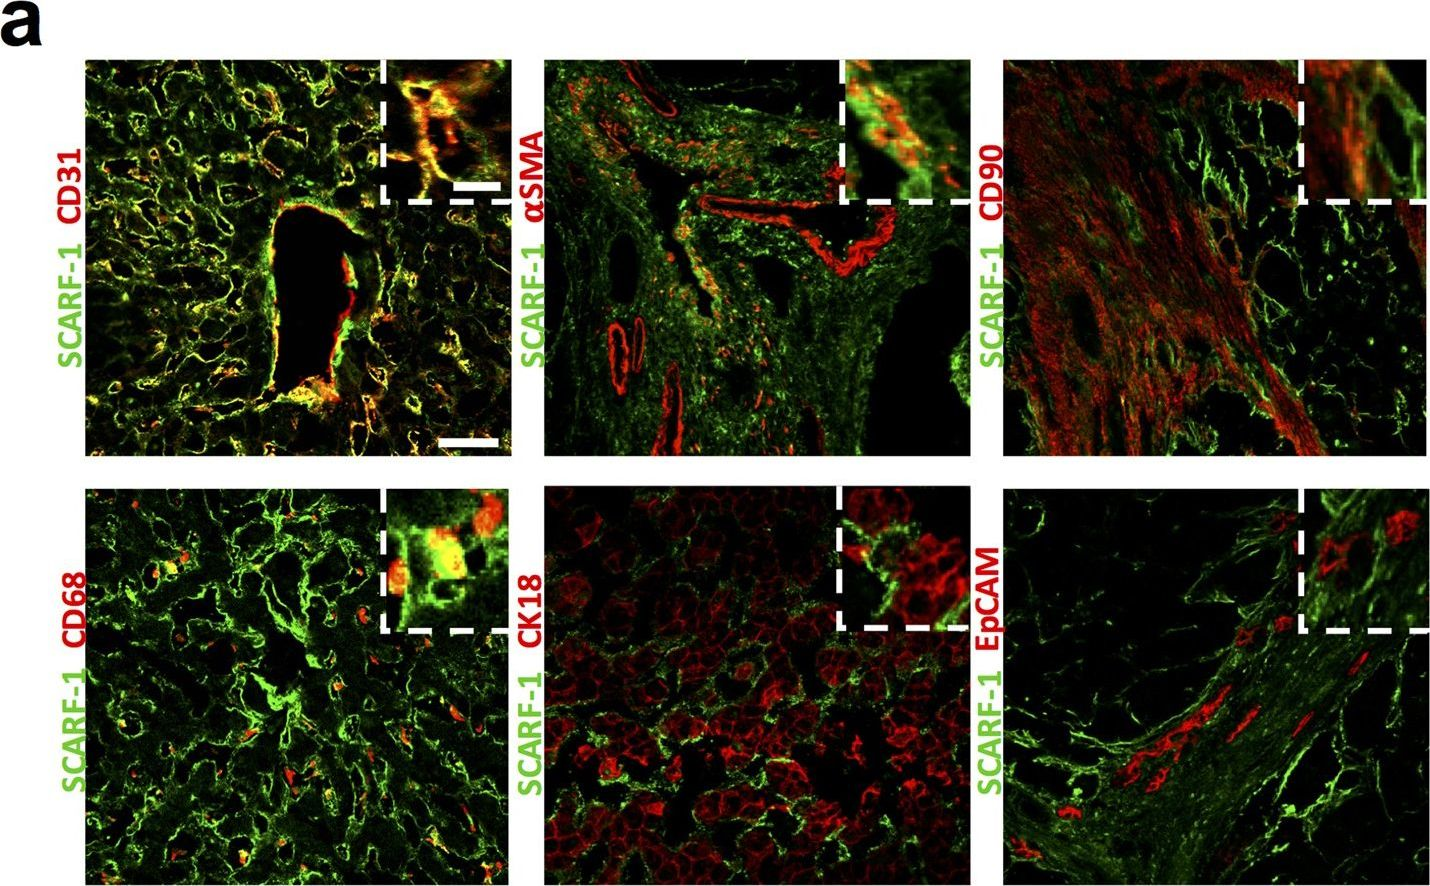 SCARF-1 promotes adhesion of CD4+ T cells to human hepatic sinusoidal endothelium under conditions of shear stress.